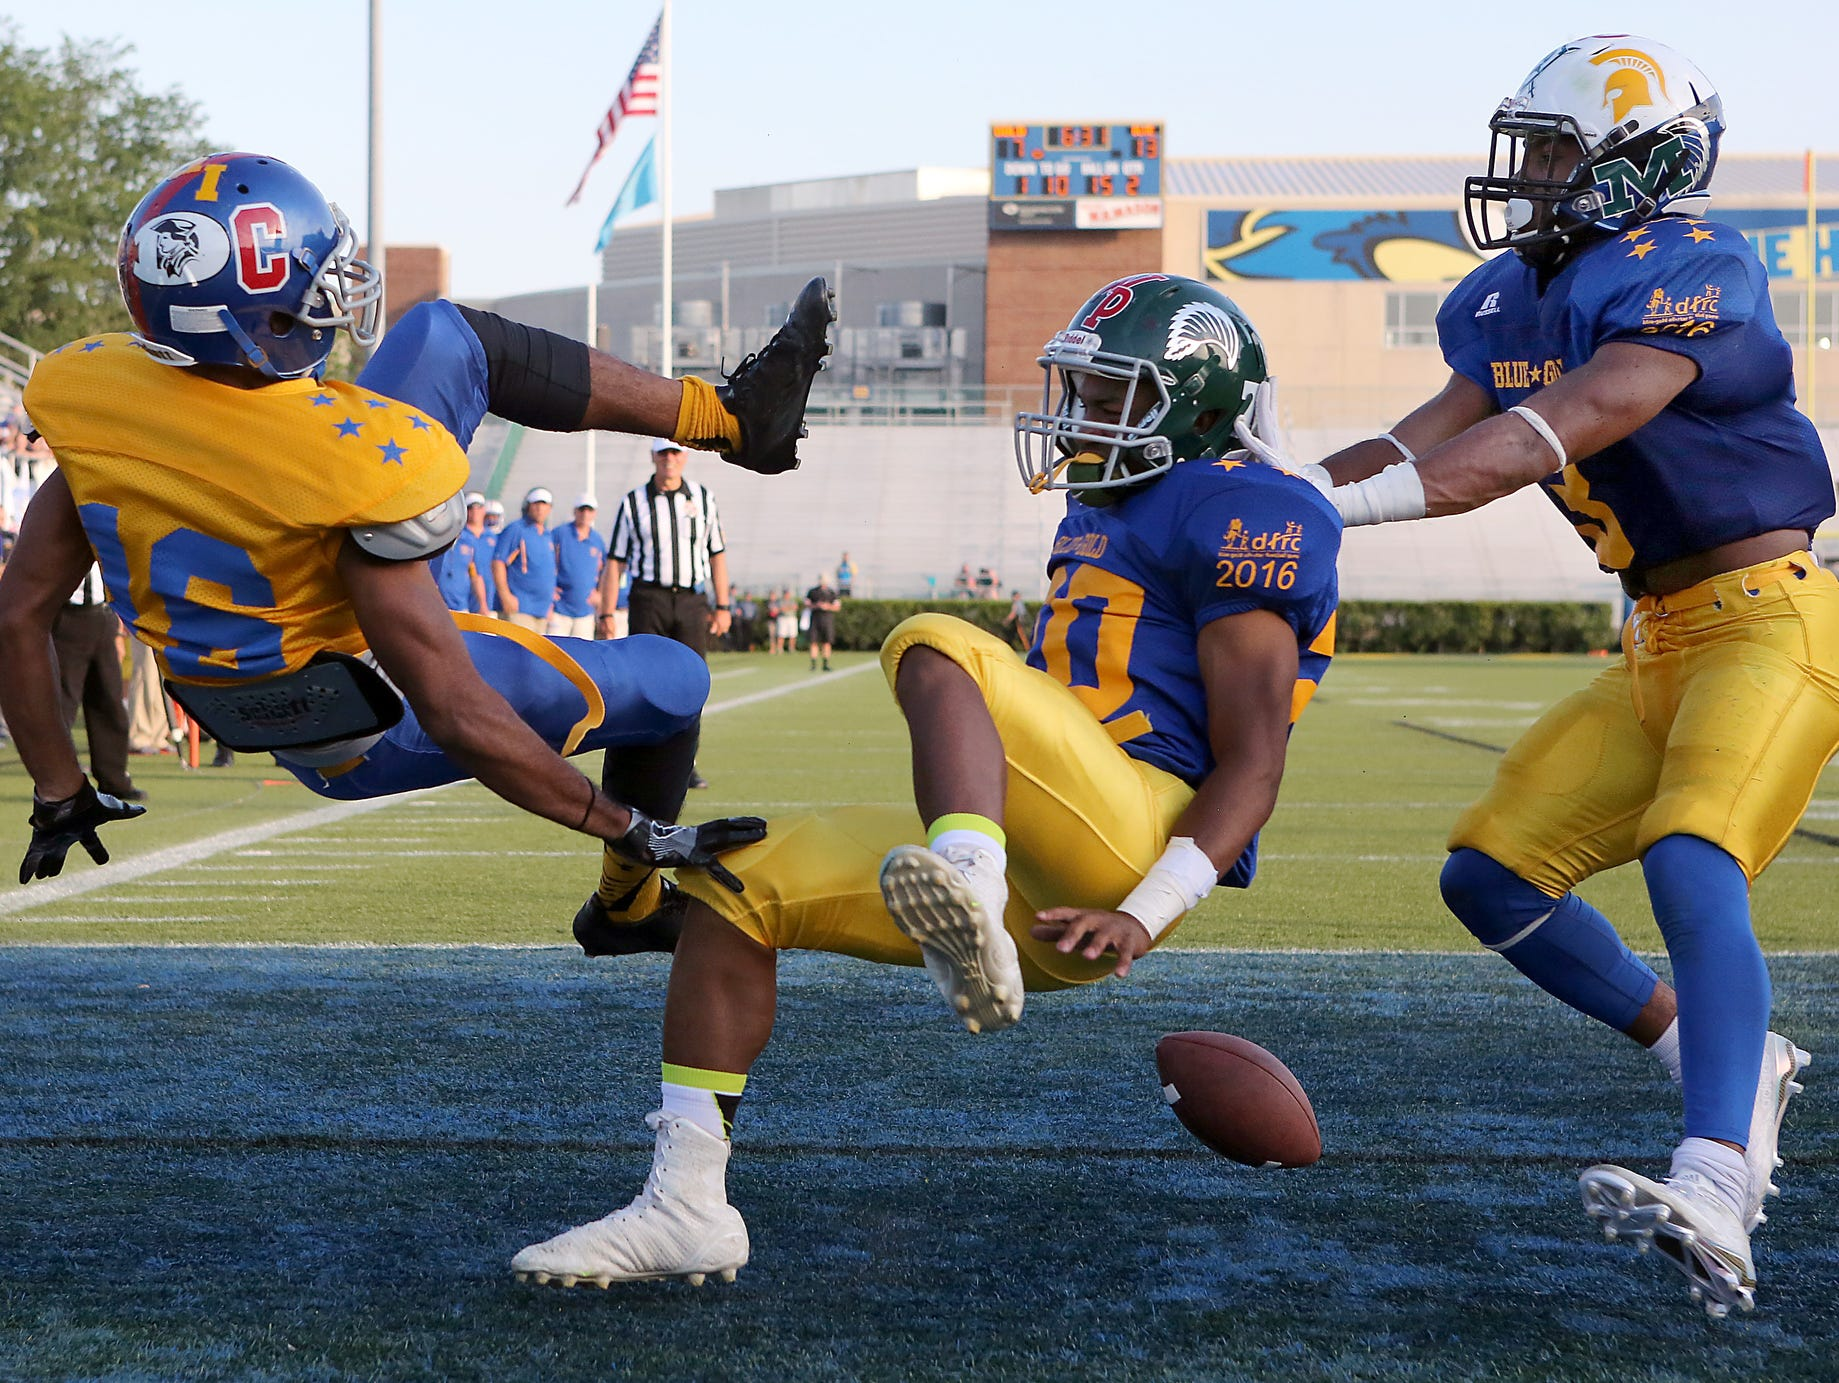 Gold's Cooper Russell of Christiana can't hold on to a pass in the end zone as Blue's Taurus Pinkney of Tower Hill (center) and Trevon Bordrick of Howard converge in the first half of the DFRC Blue Gold All-Star game at Delaware Stadium Saturday. Defensive pass interference was called on the play.